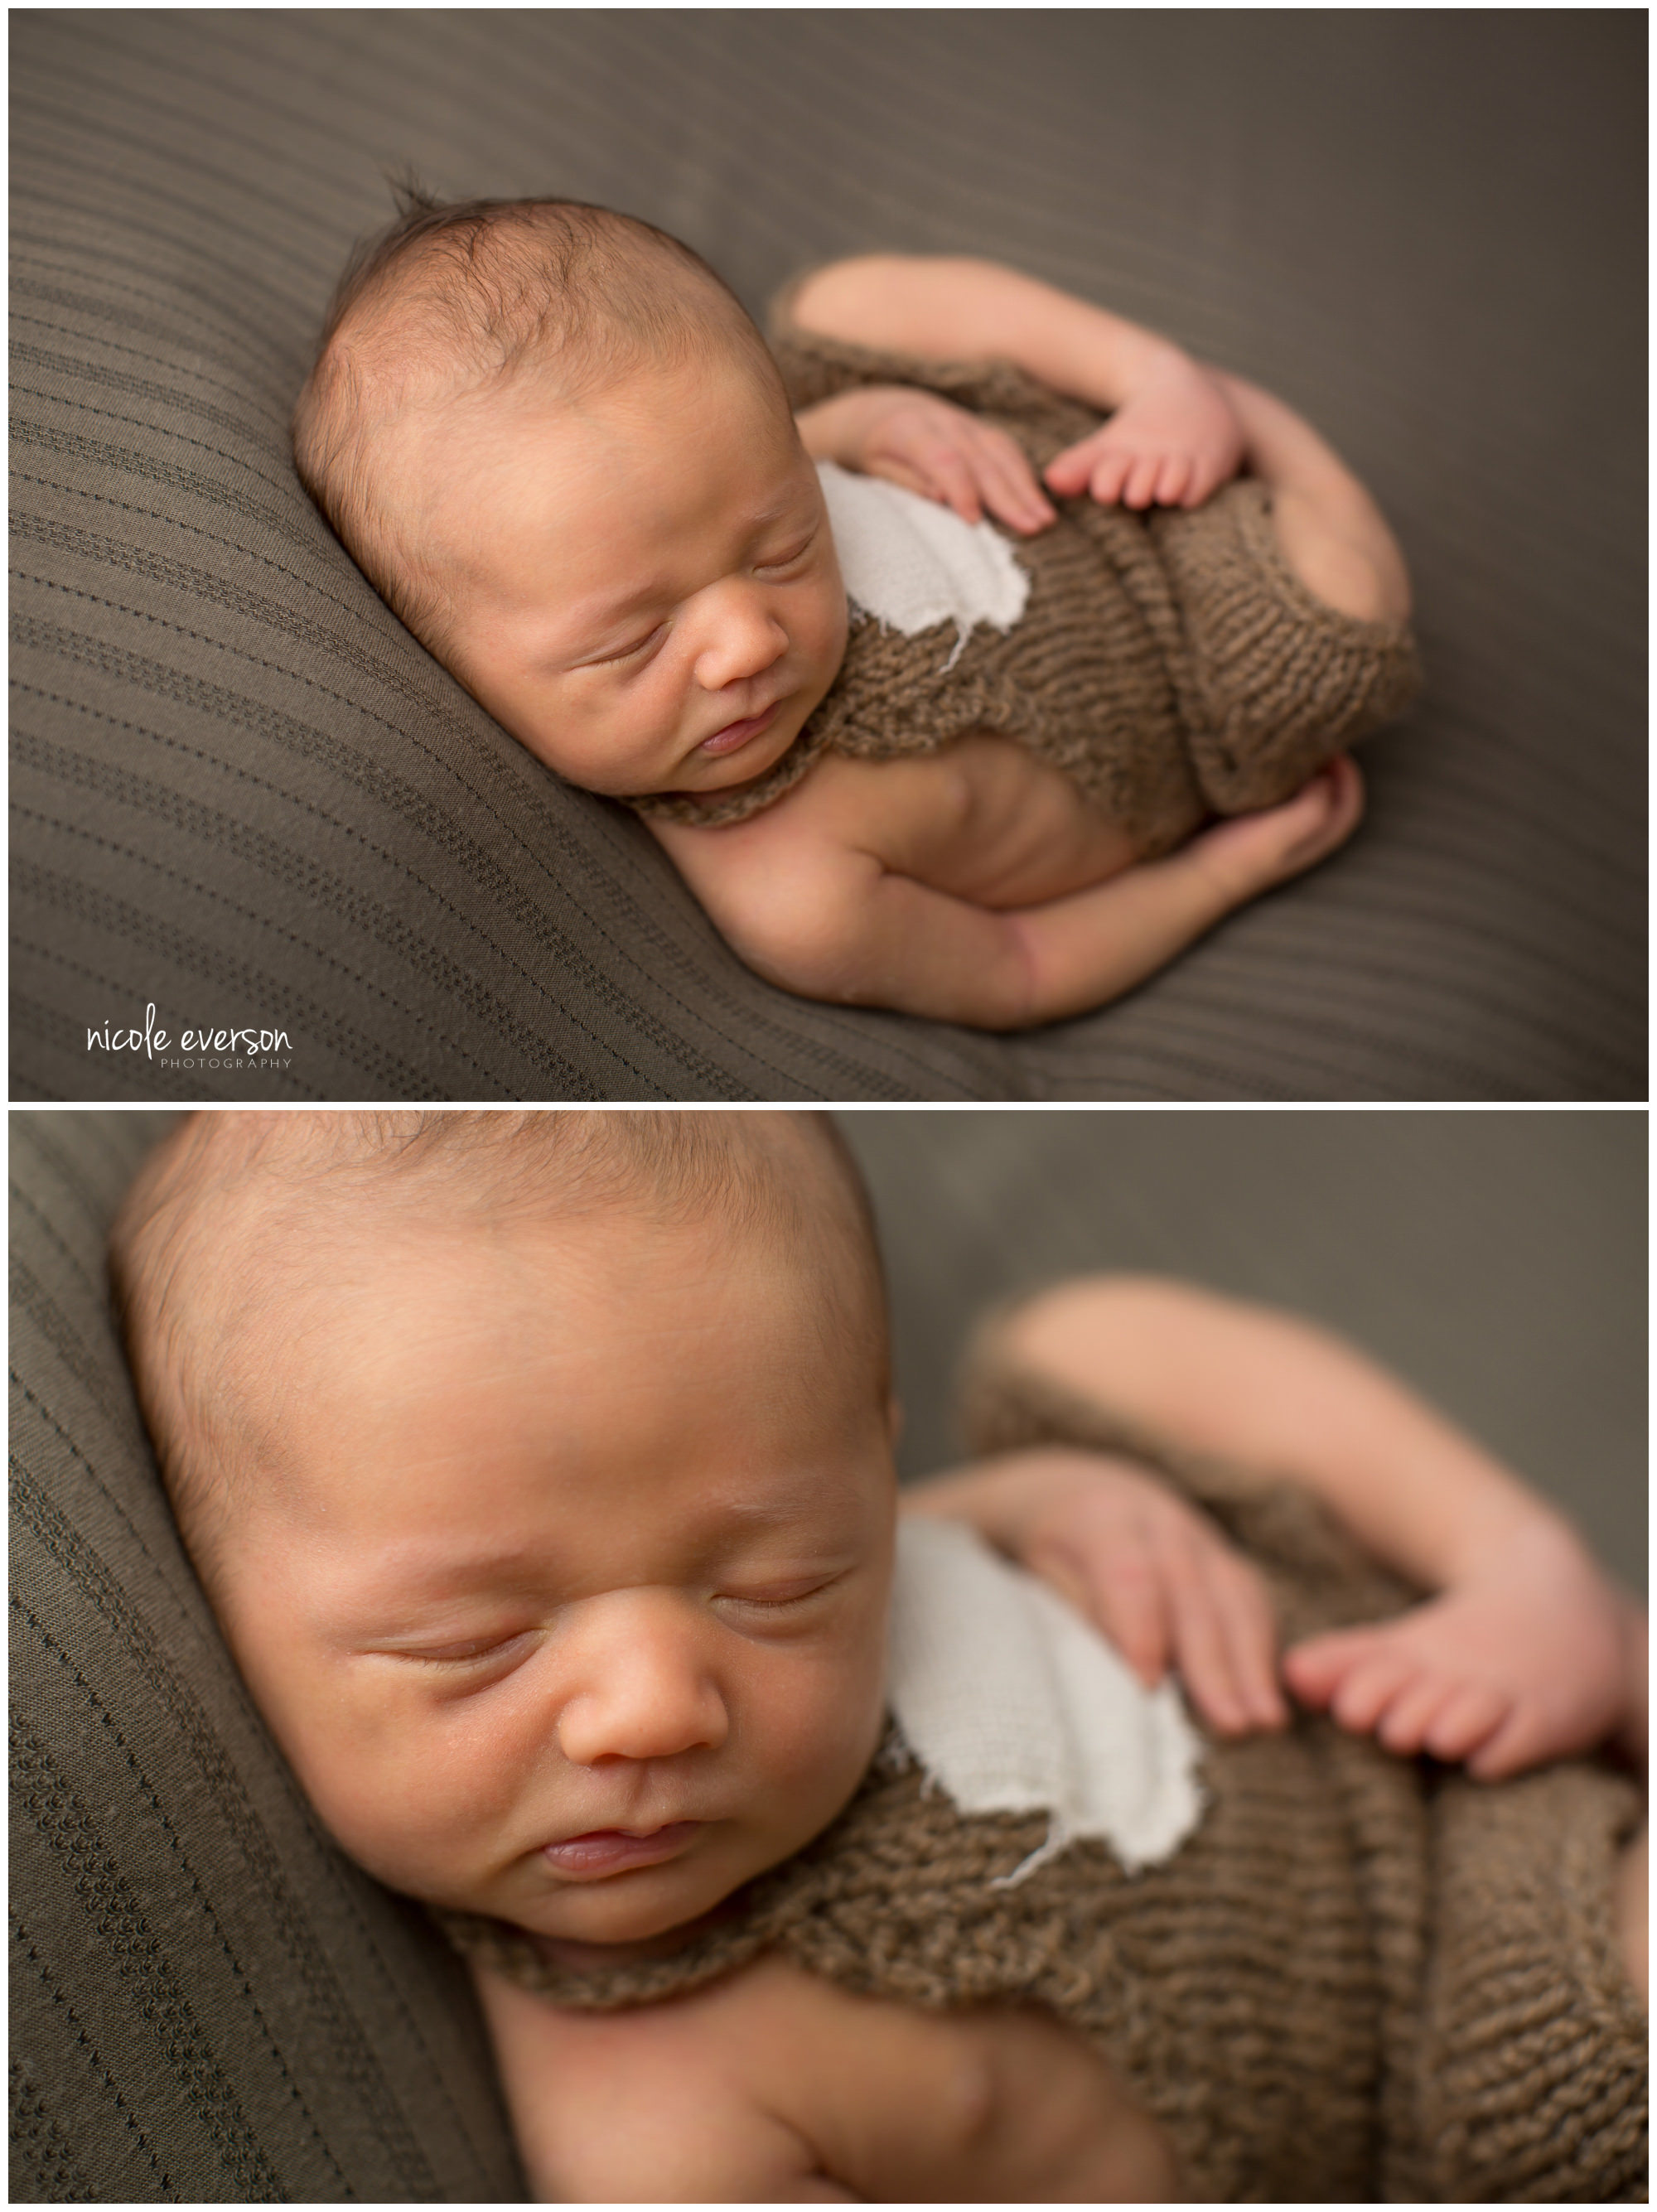 photograph of a sleeping newborn baby boy